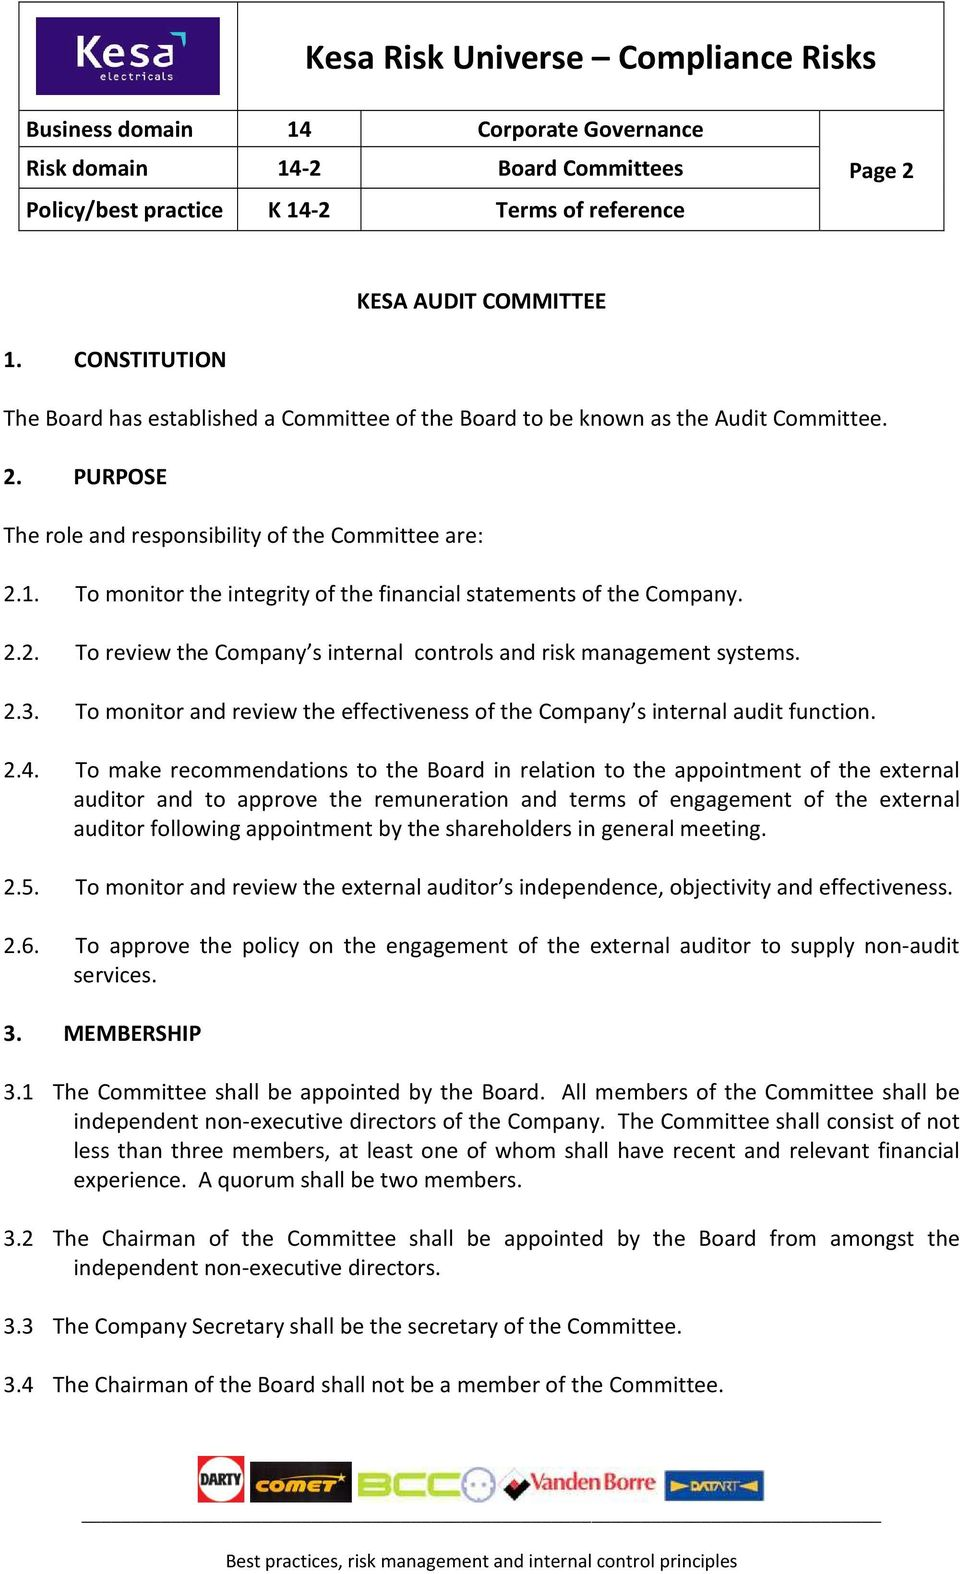 To make recommendations to the Board in relation to the appointment of the external auditor and to approve the remuneration and terms of engagement of the external auditor following appointment by